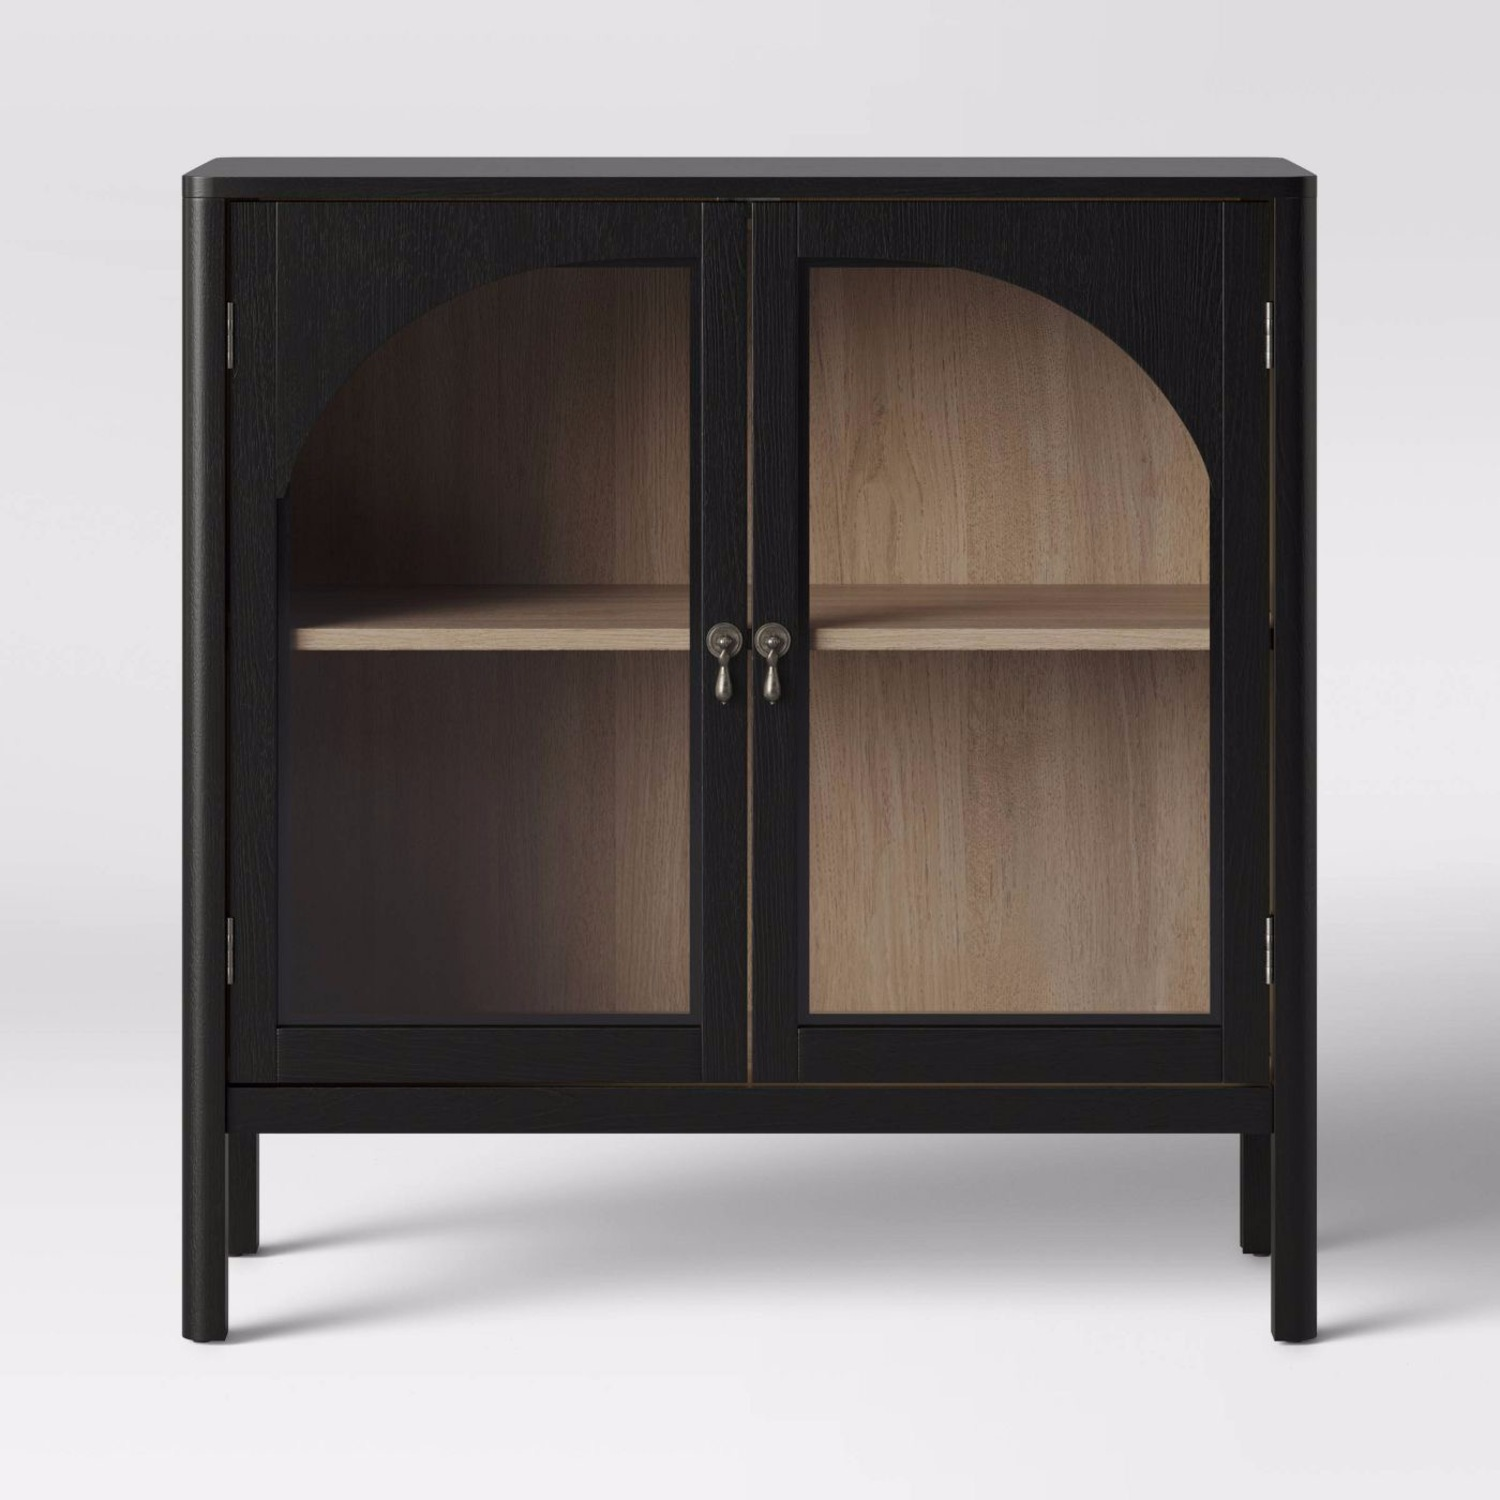 Target Arched Glass & Wood Cabinet w/ Custom Knobs - image-1